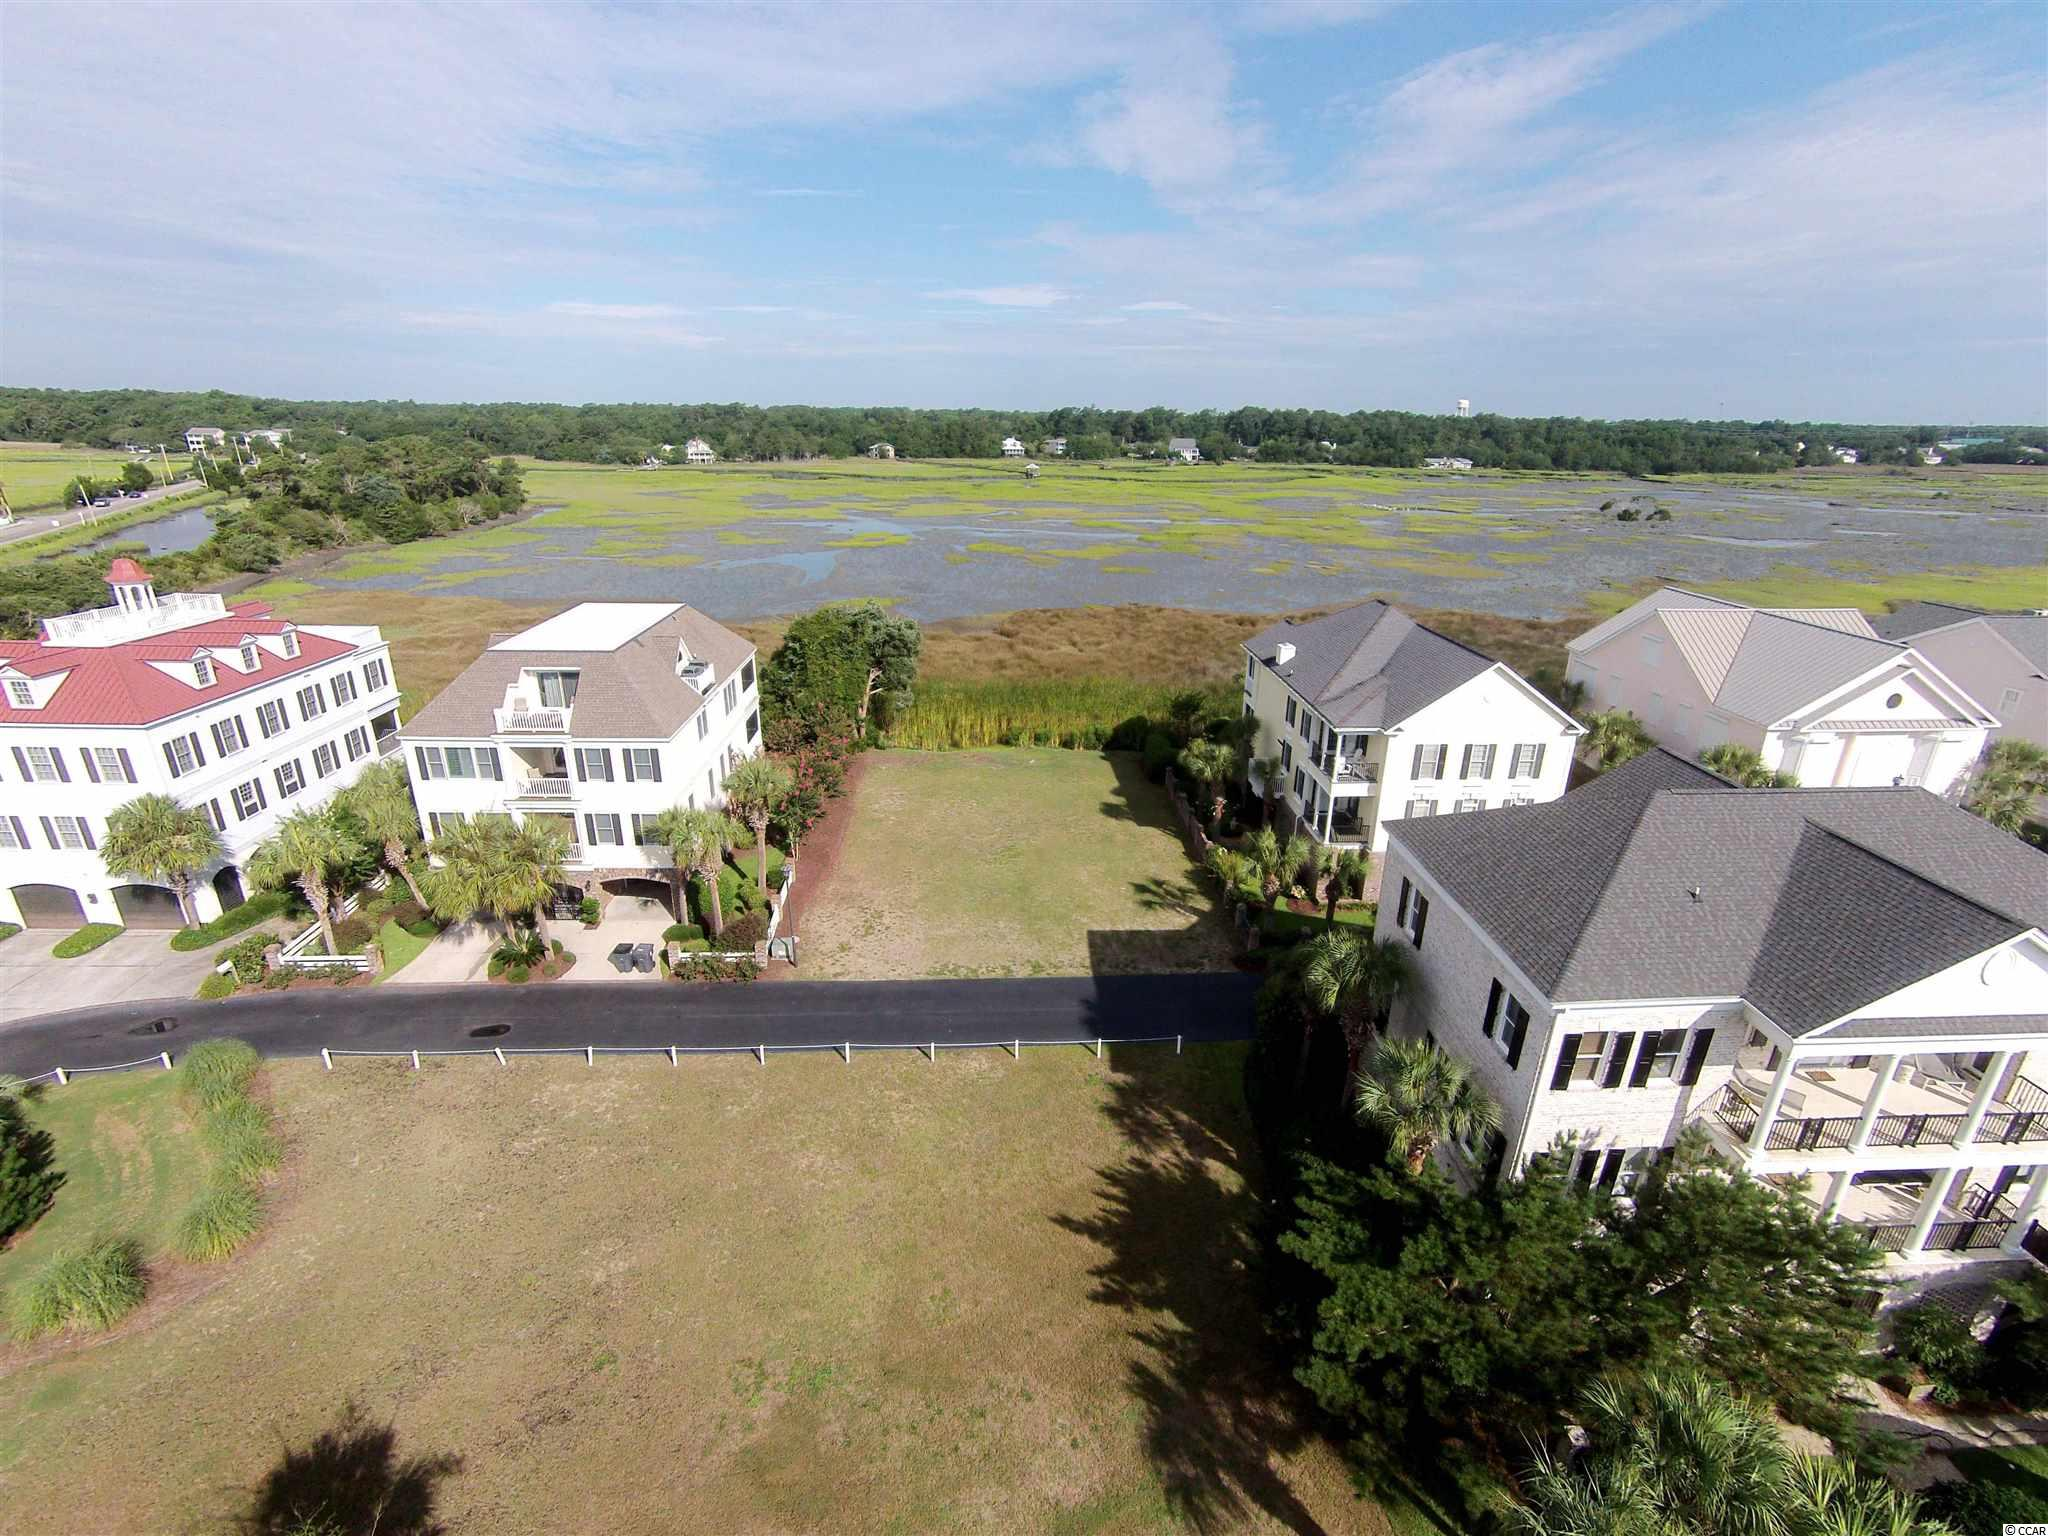 """Charlestowne Grant has been described as """"Charleston on the beach"""" featuring elegant low country beach homes in the finest of settings, nestled between the ocean and the marsh at the south end of Litchfield by the Sea. Lot 43 is one of the last of the premiere lots overlooking the marsh and inlet creeks while only a short private walk to the beach. Enjoy all the amenities of Litchfield by the Sea including private pools, bike and walking trails, fishing and crabbing docks, tennis and much more including one of the best beaches in all of SC. Sea Oats Circle provides the perfect setting for building a permanent or vacation home; come enjoy the Pawleys lifestyle!"""